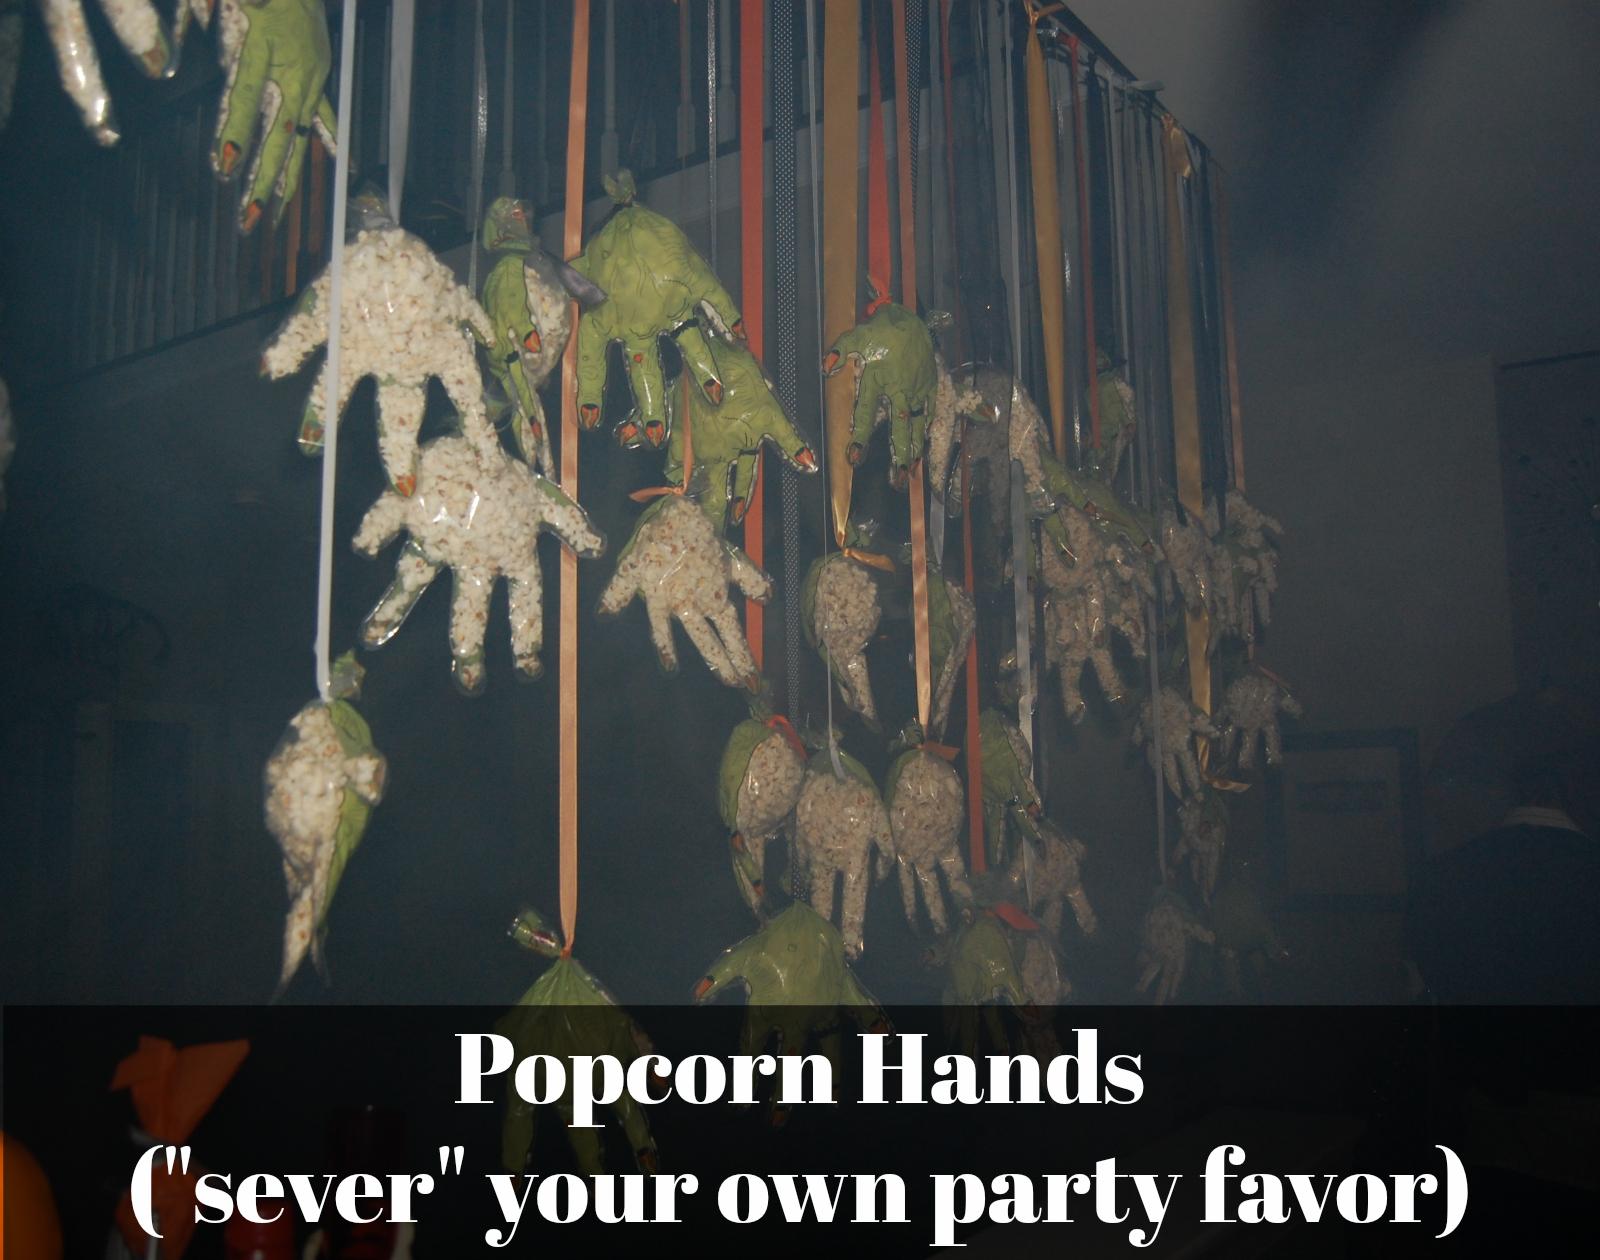 Popcorn Hands hanging from ceiling